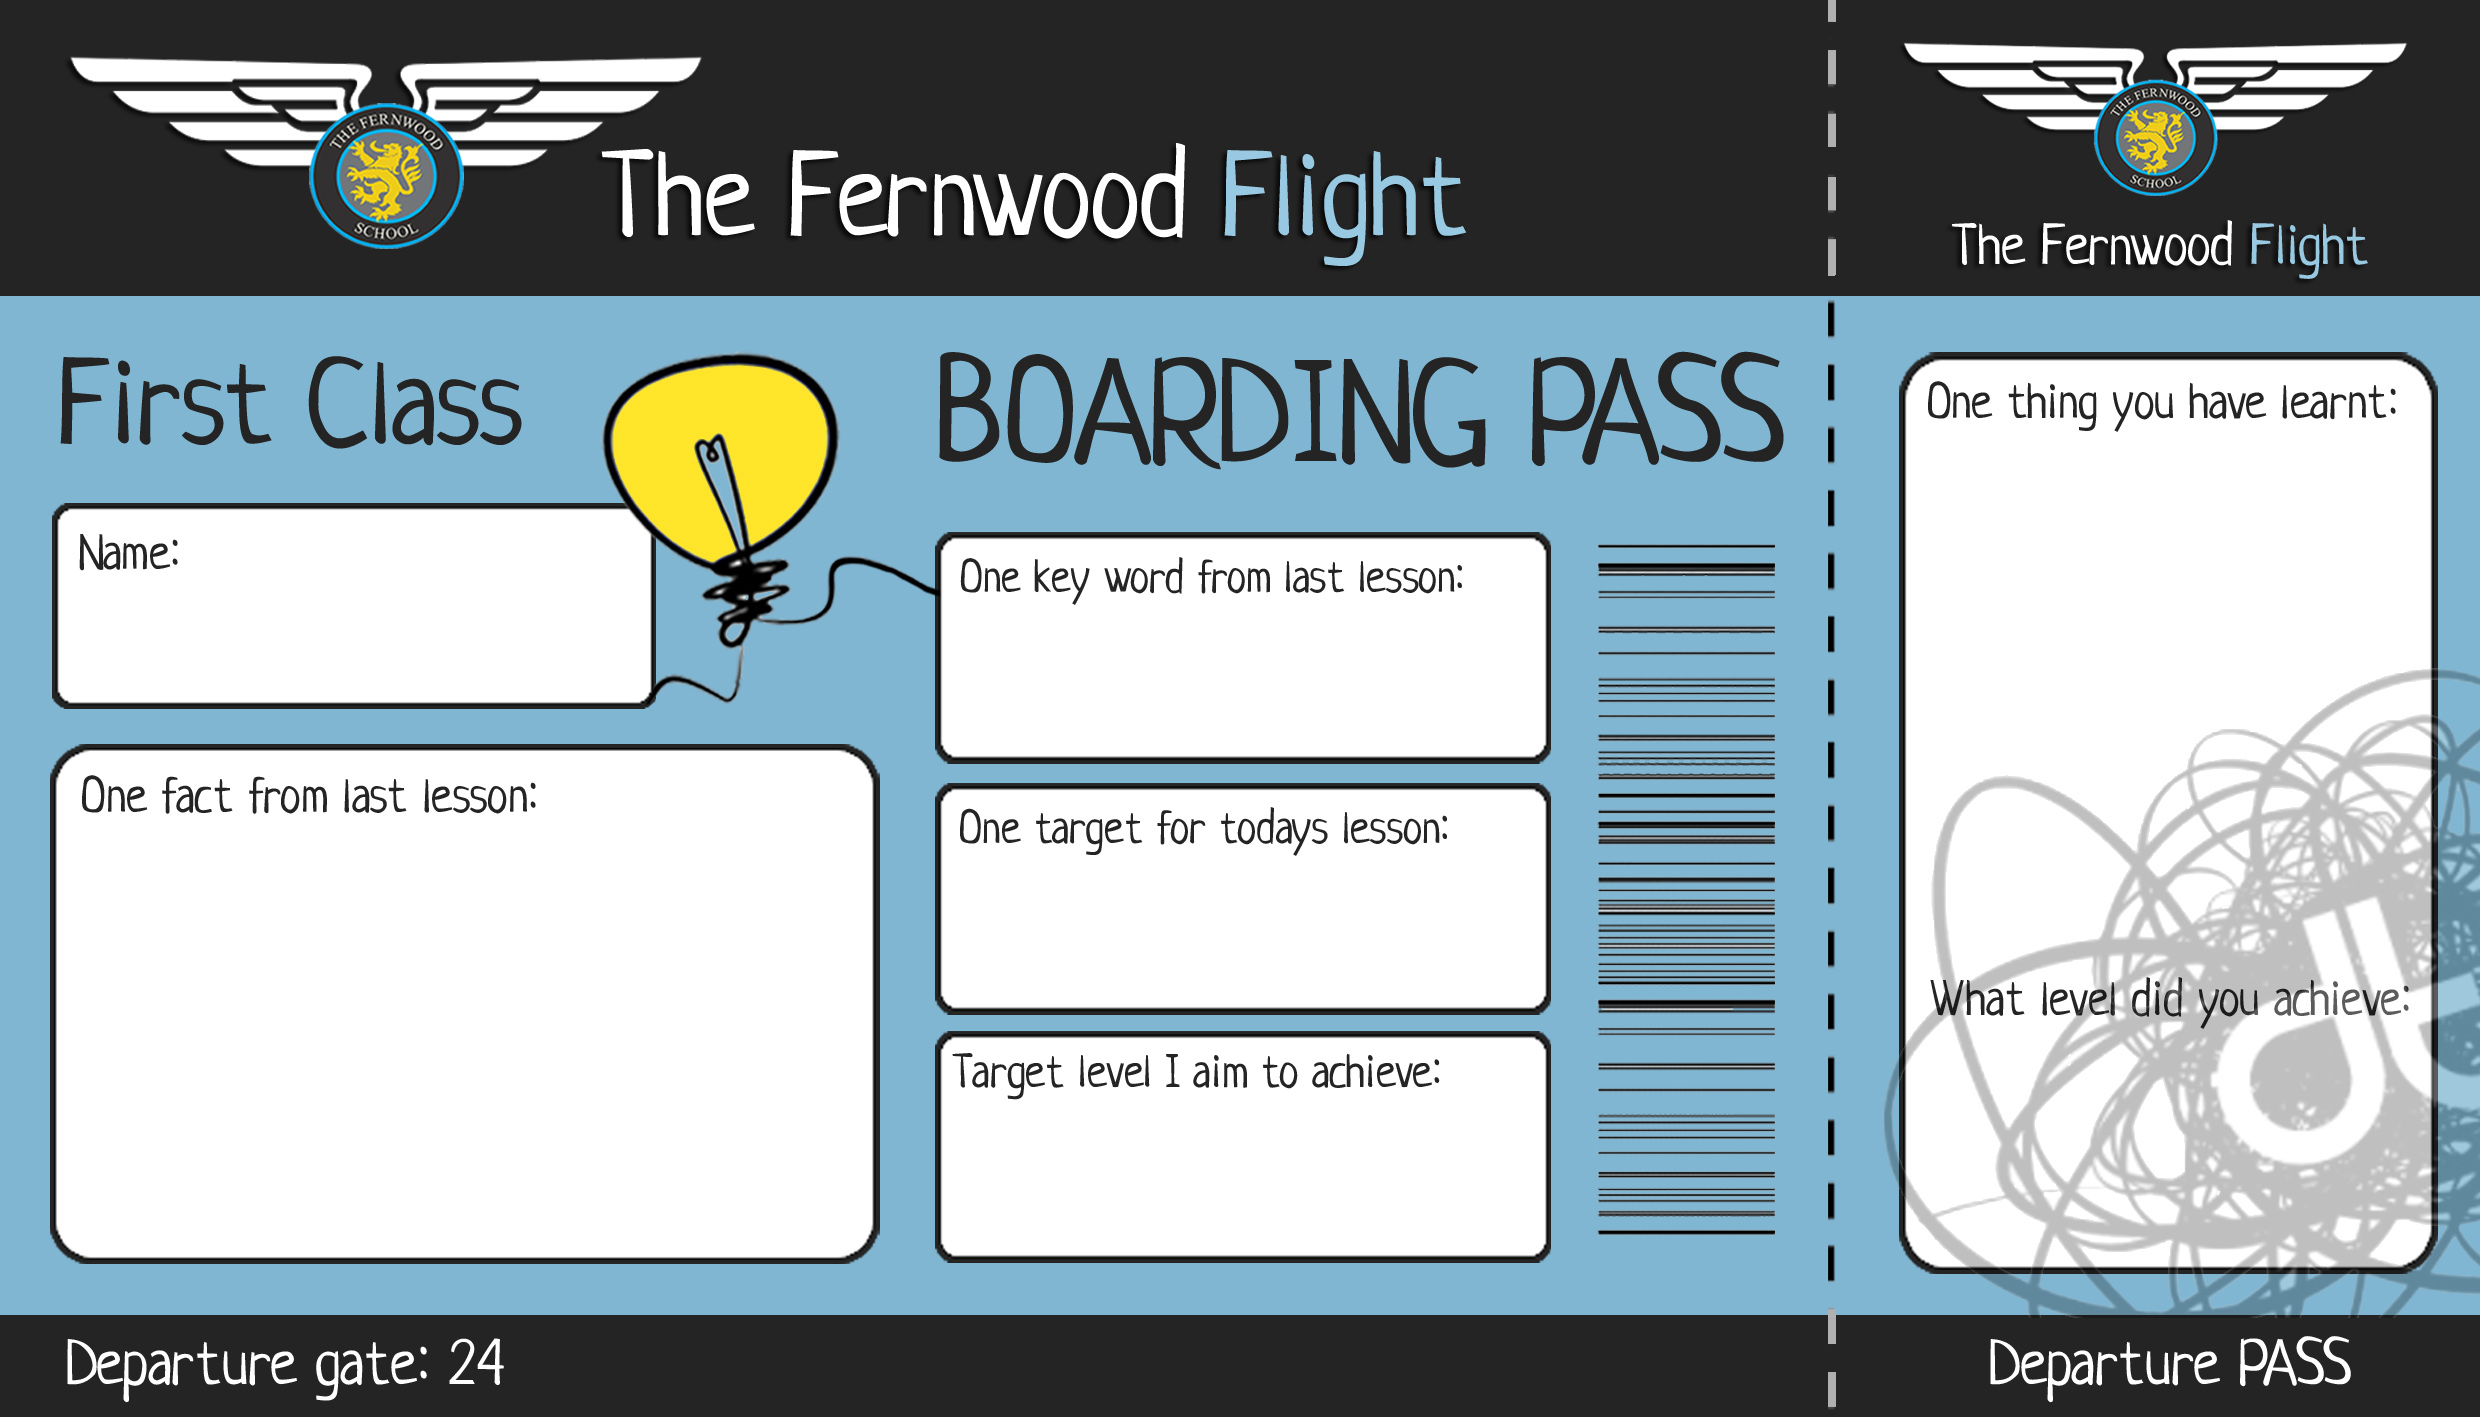 Used as a starter (Boarding Card) and plenary (Departure Pass)